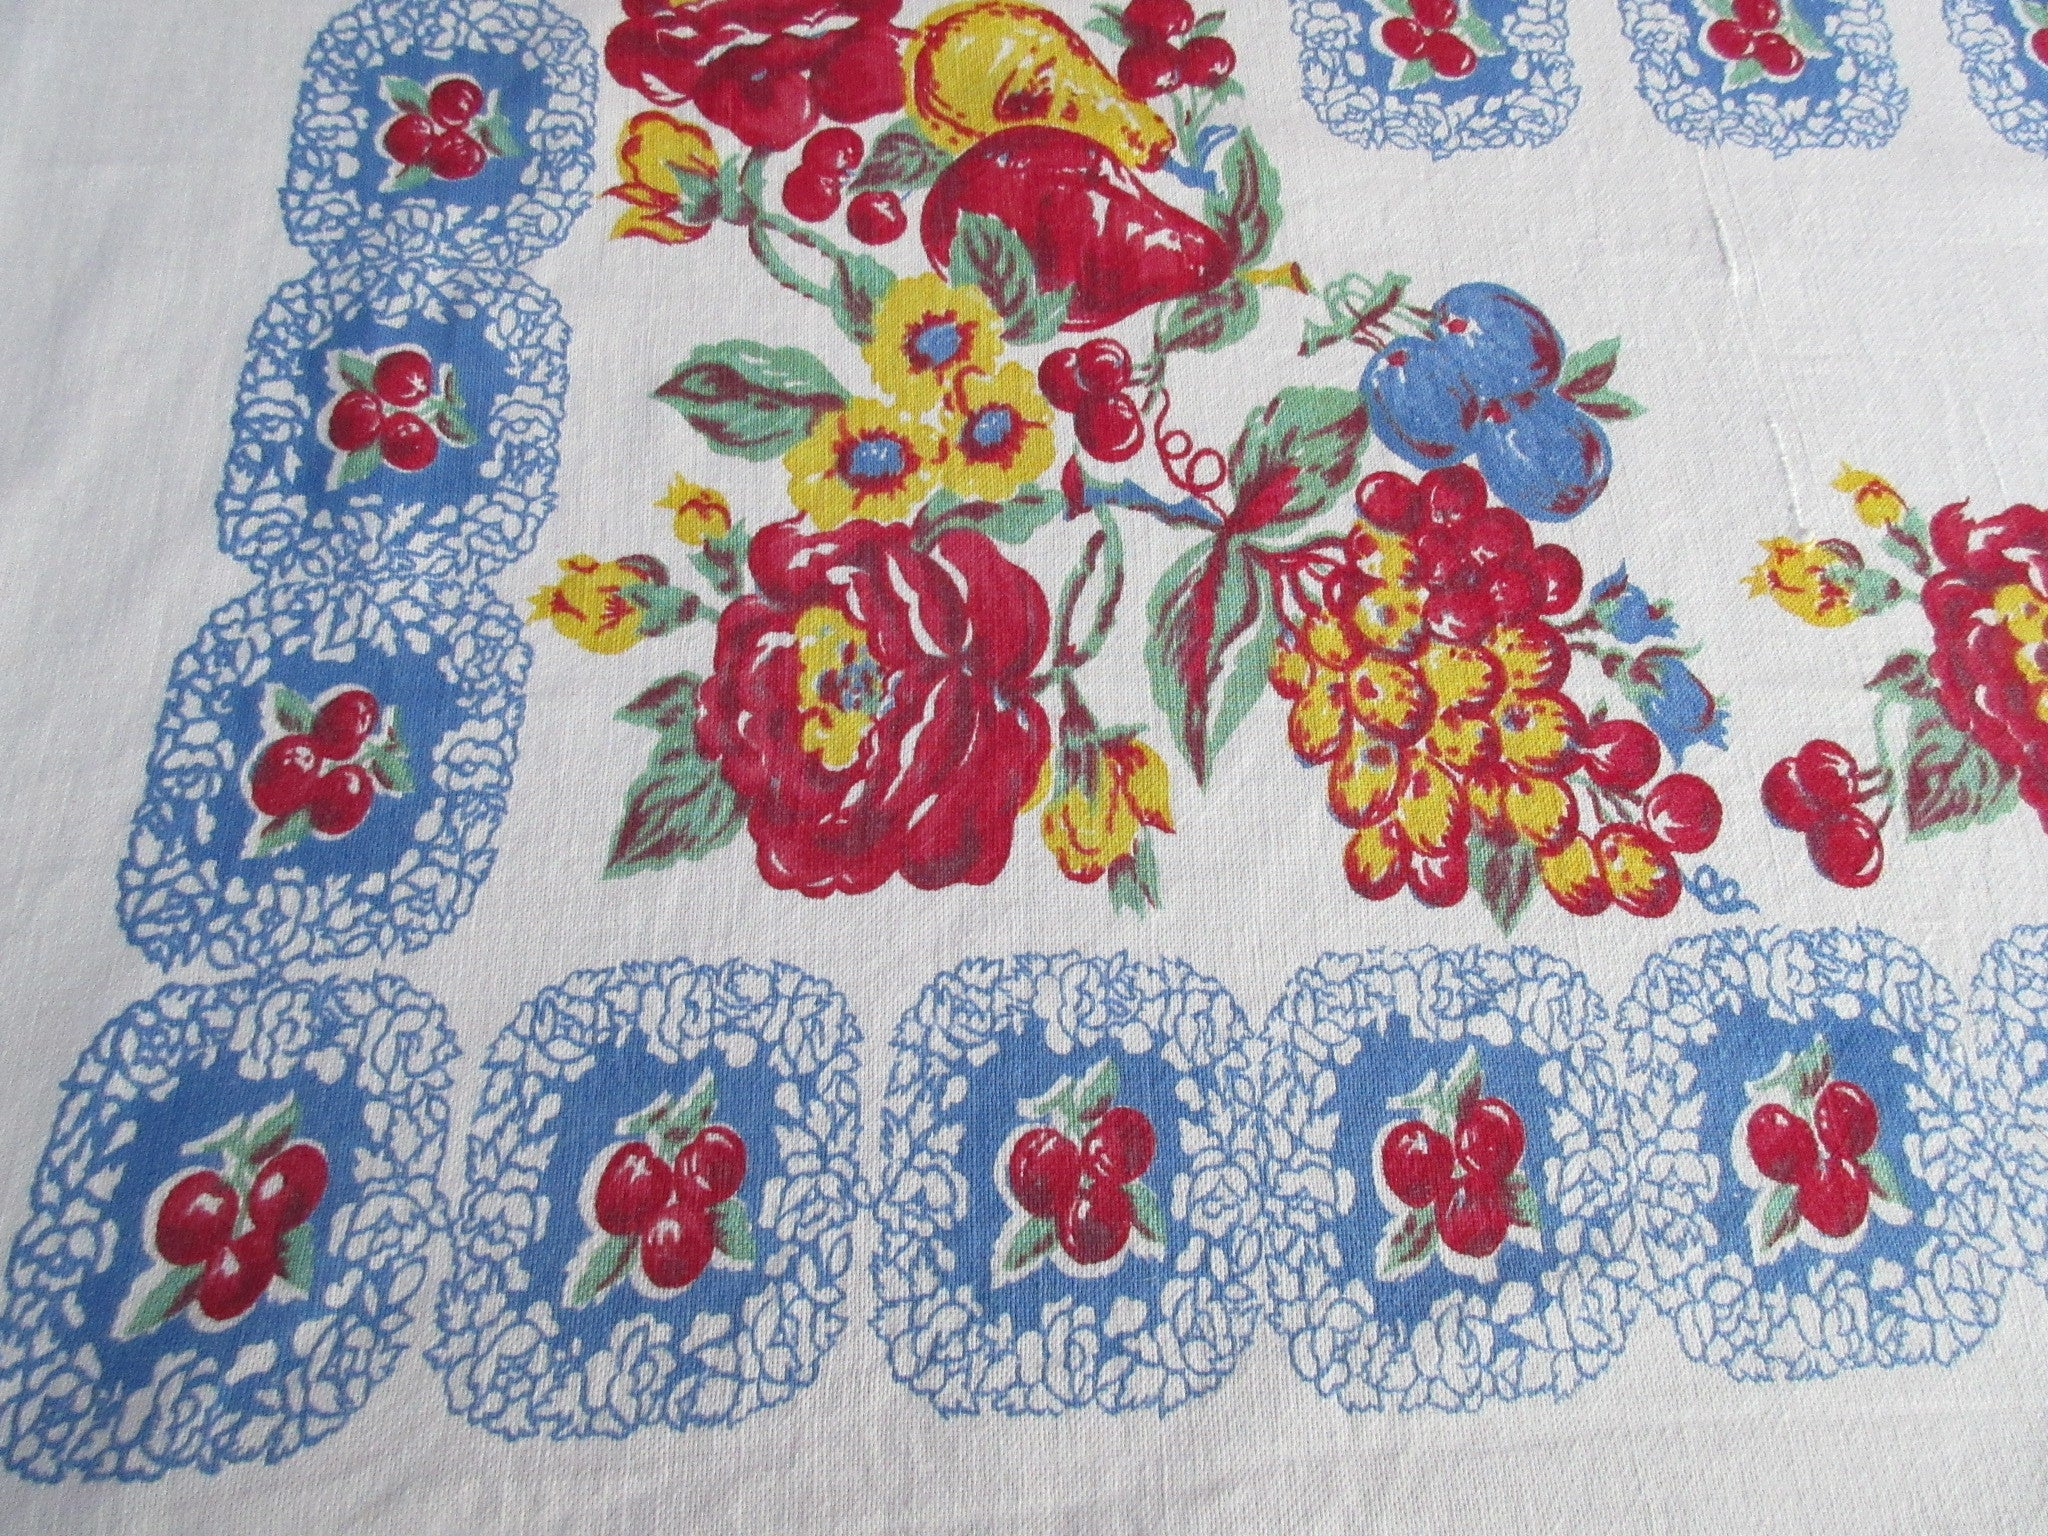 Rustic Primary Red Yellow Green Fruit Roses on Blue Vintage Printed Tablecloth (67 X 56)